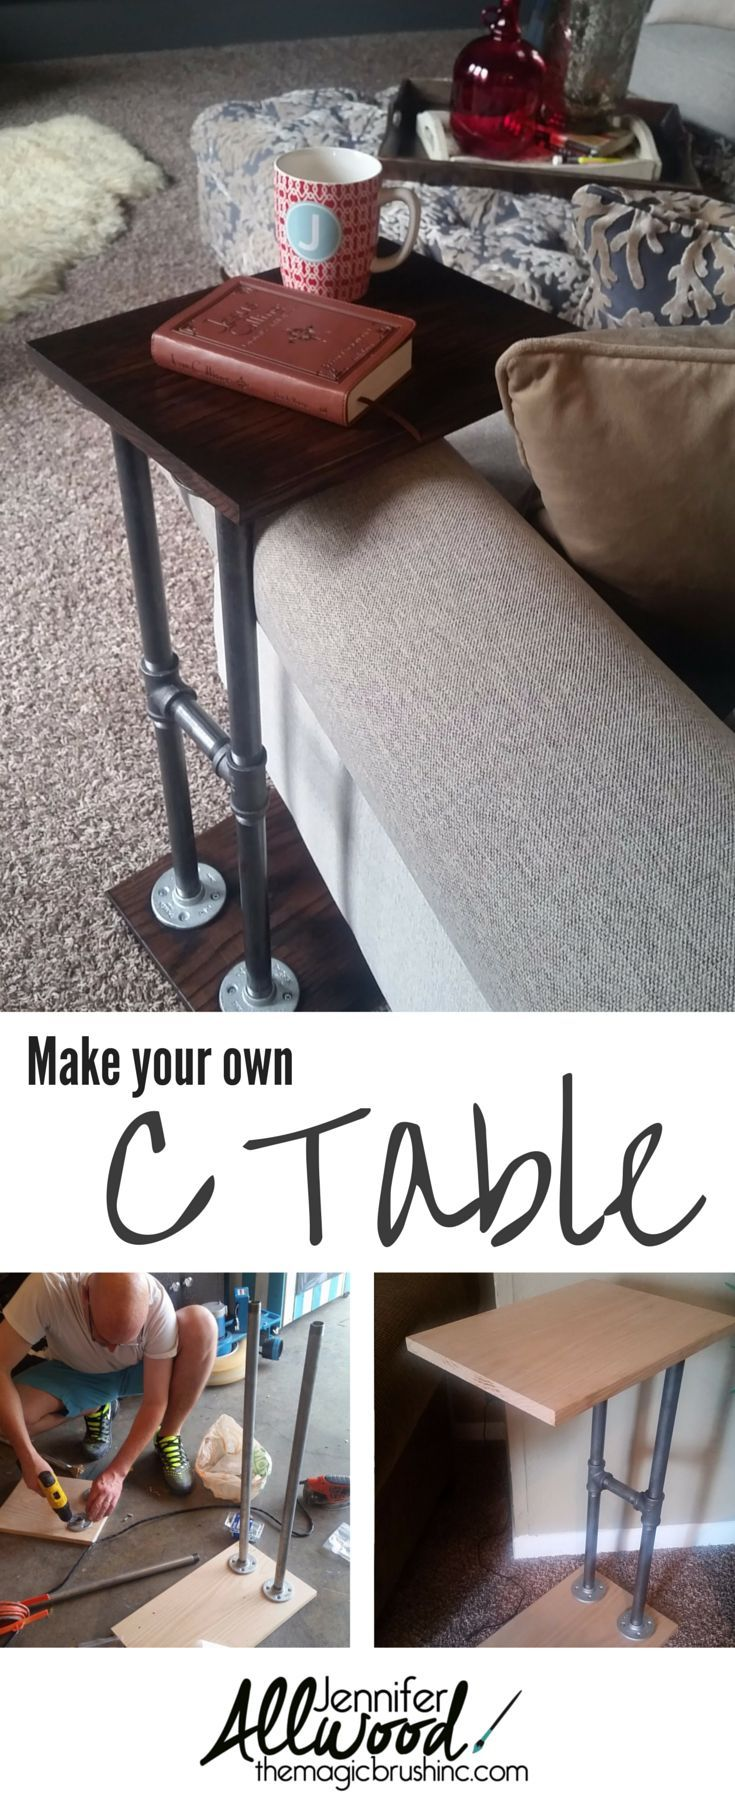 You'll never have to reach for that coffee mug again!  Make your own C table for armchairs! We used industrial pipes, flanges and stained oak wood pieces. Get instructions from Jennifer Allwood at http://TheMagicBrushinc.com